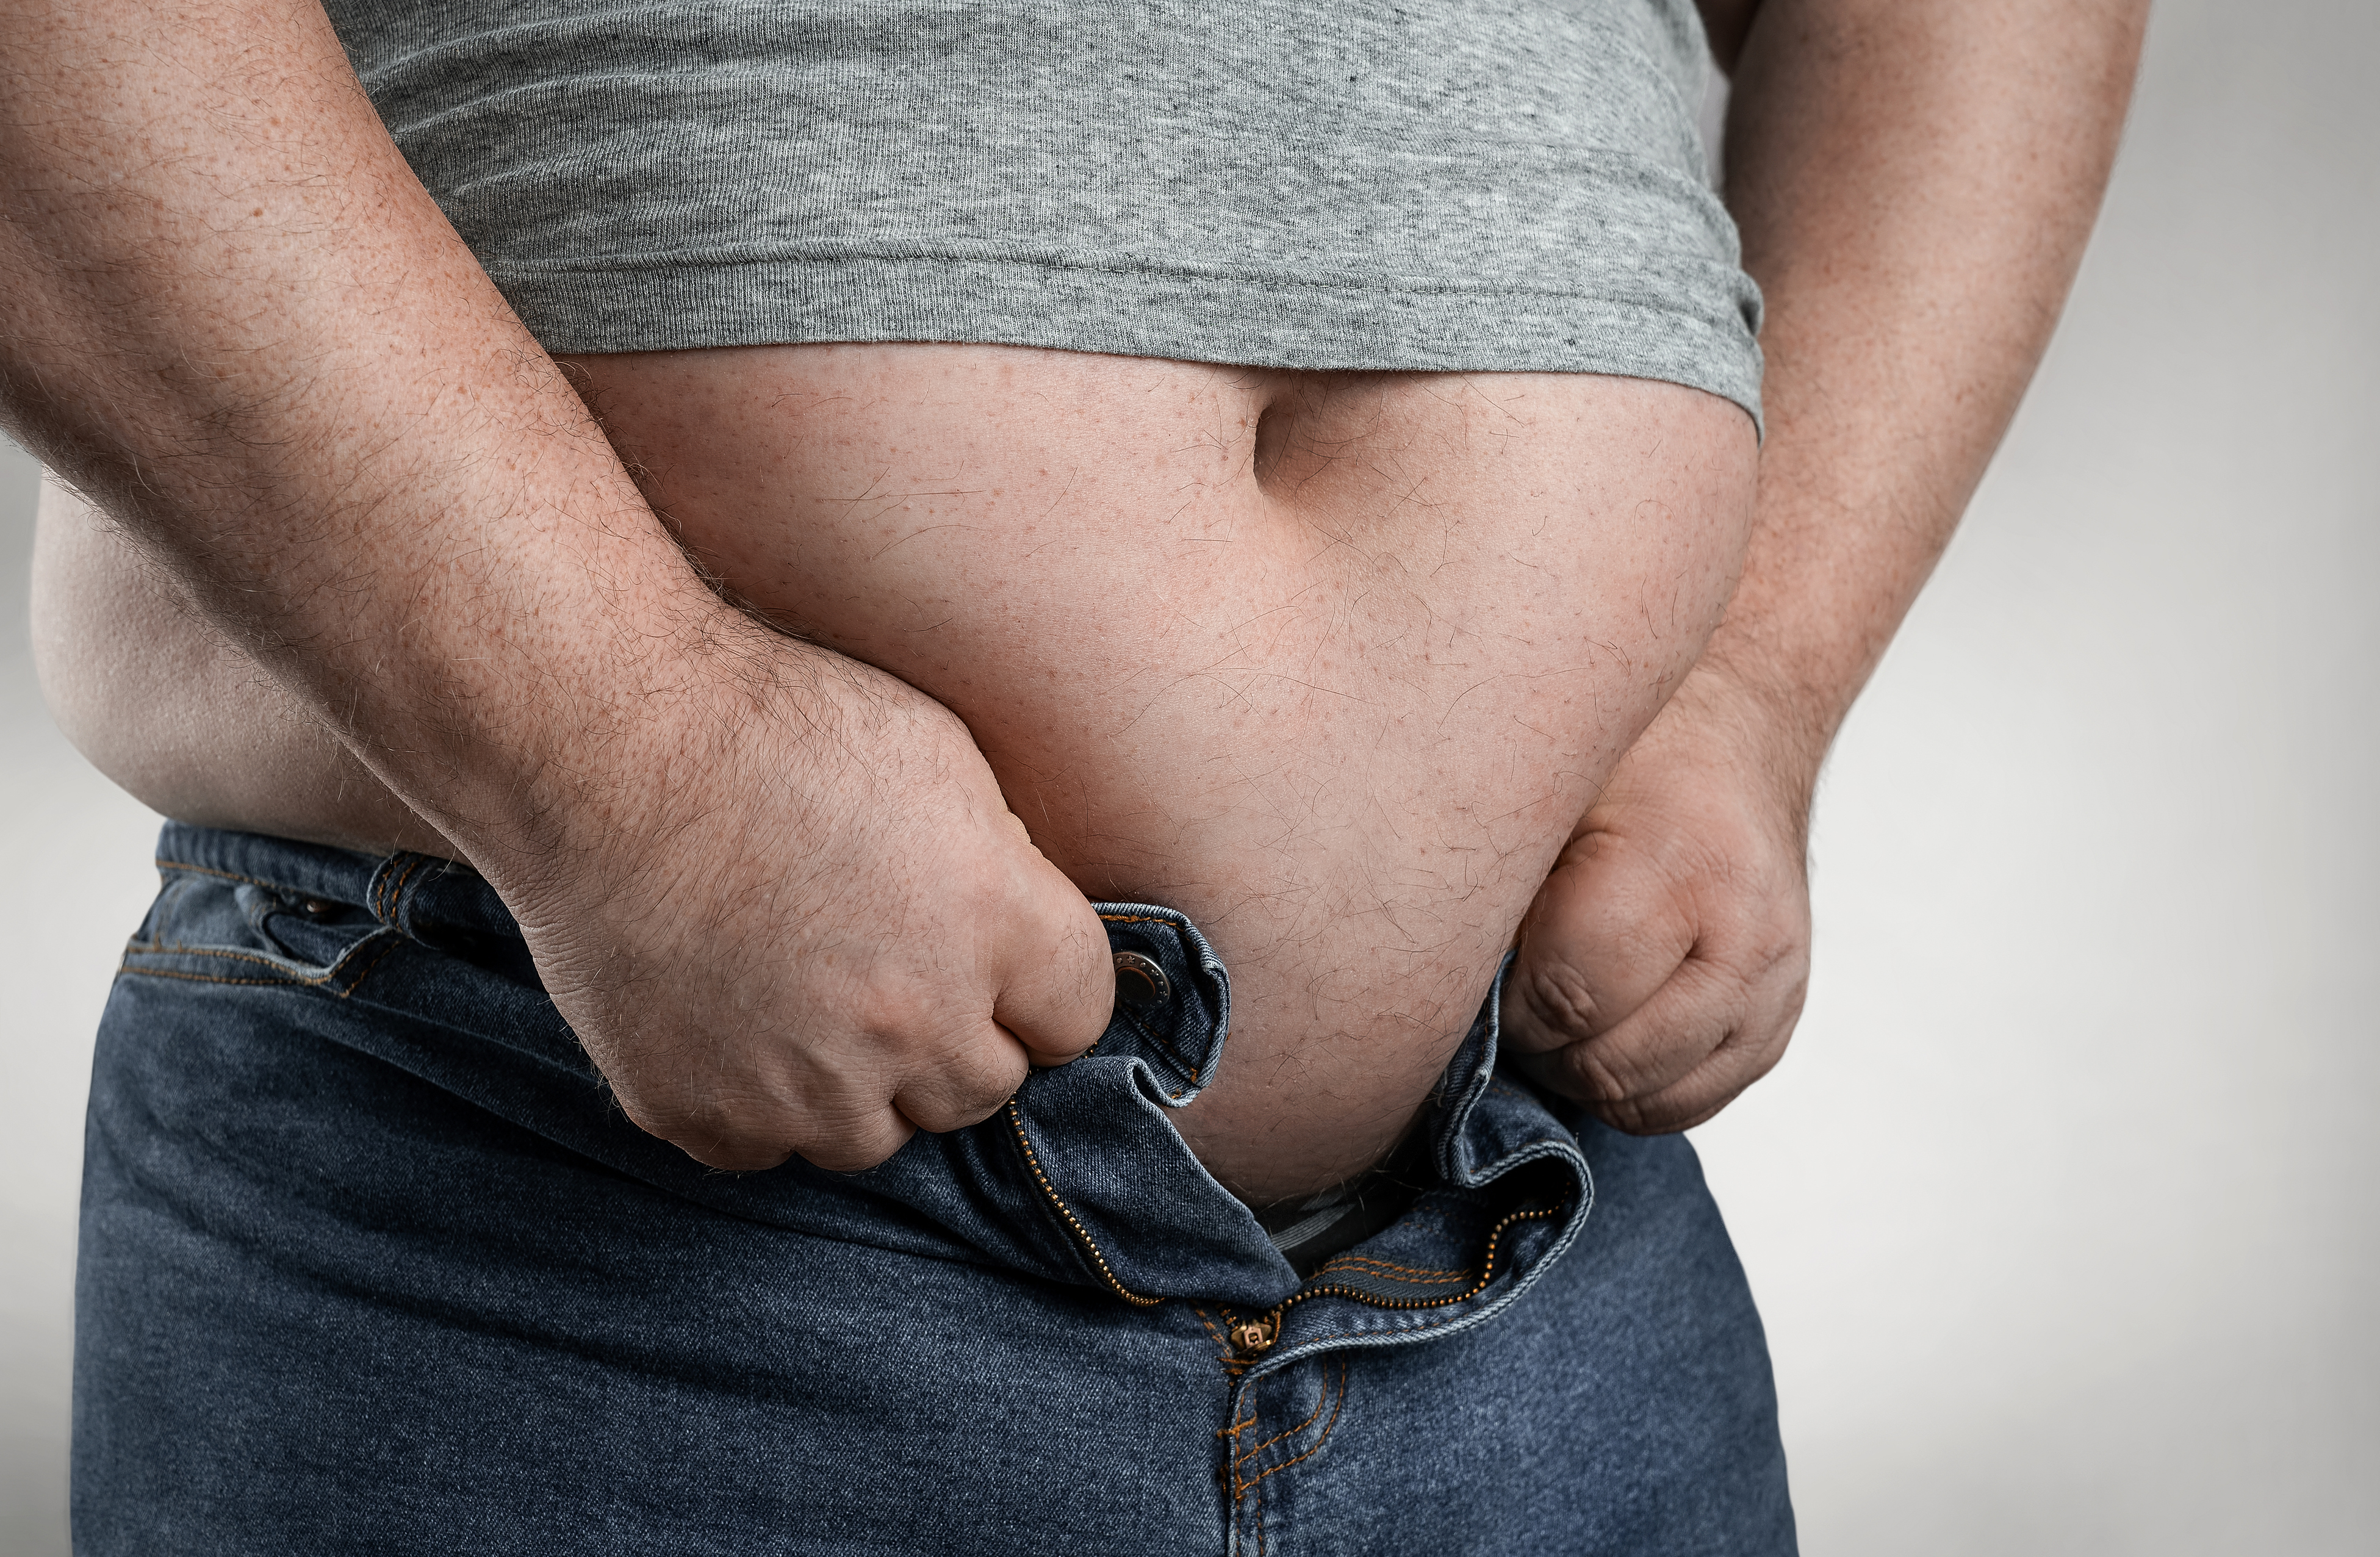 These states are the 'fattest' in the US, report finds